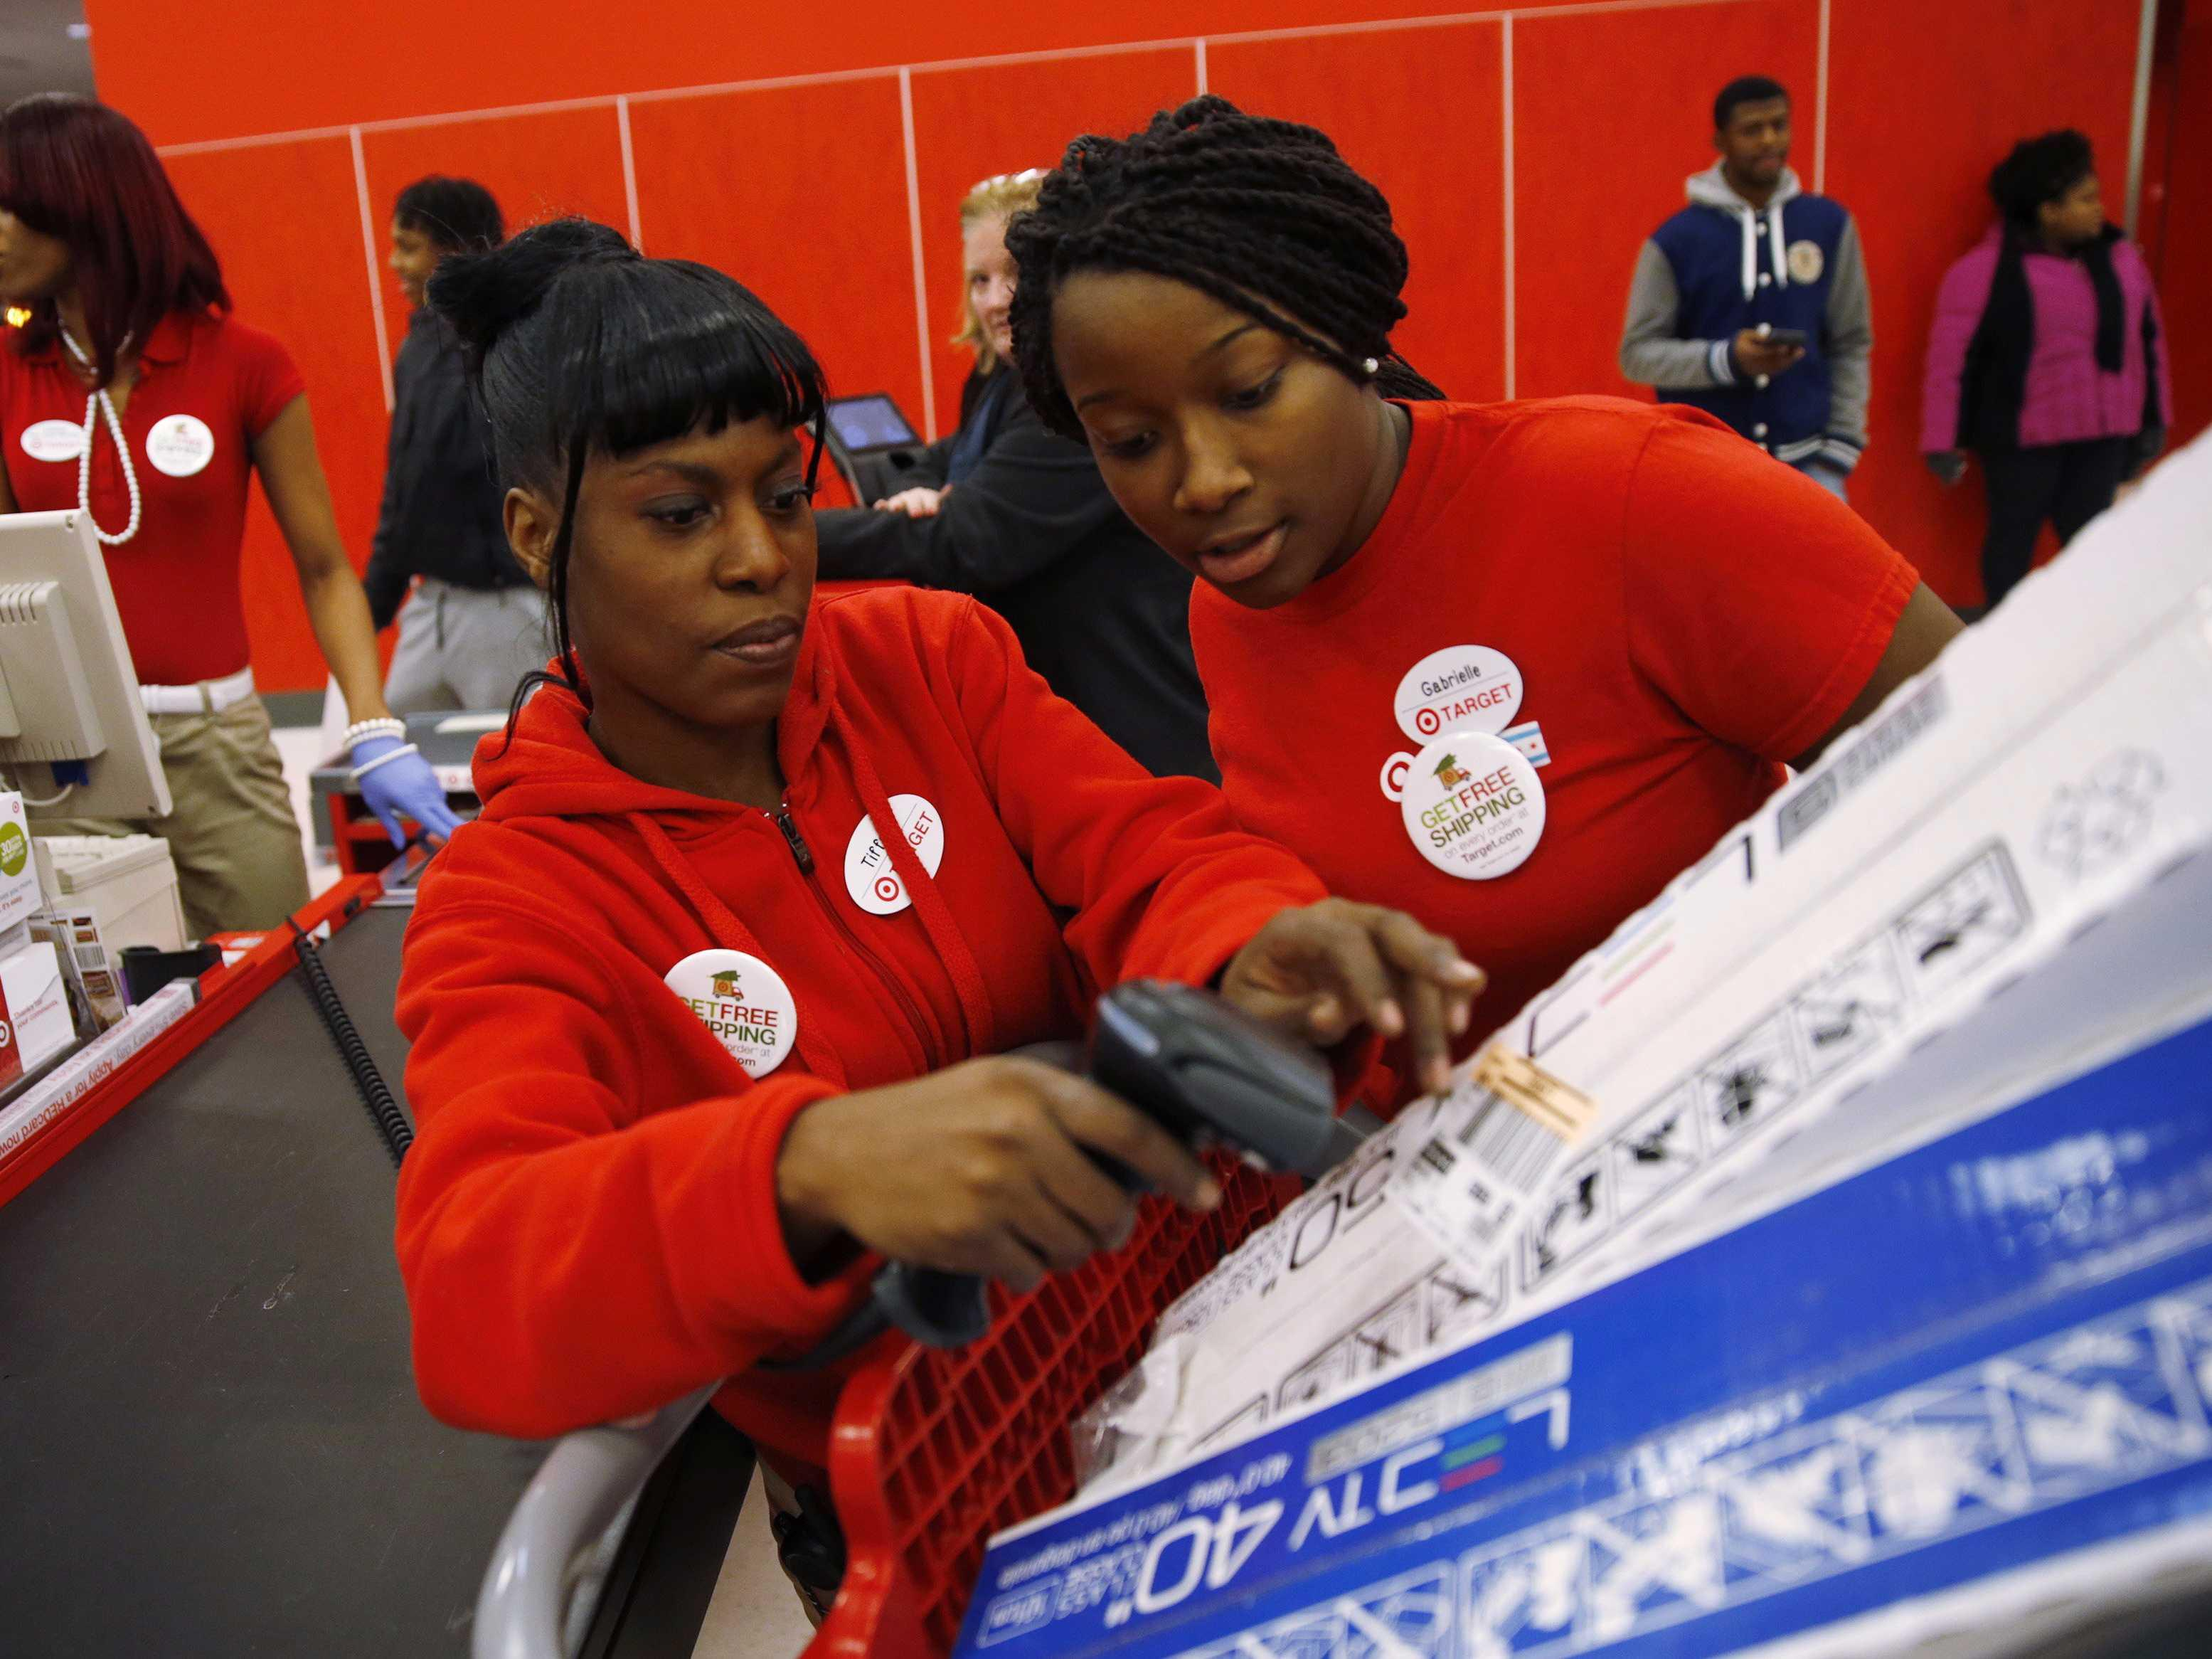 Target is firing thousands of workers